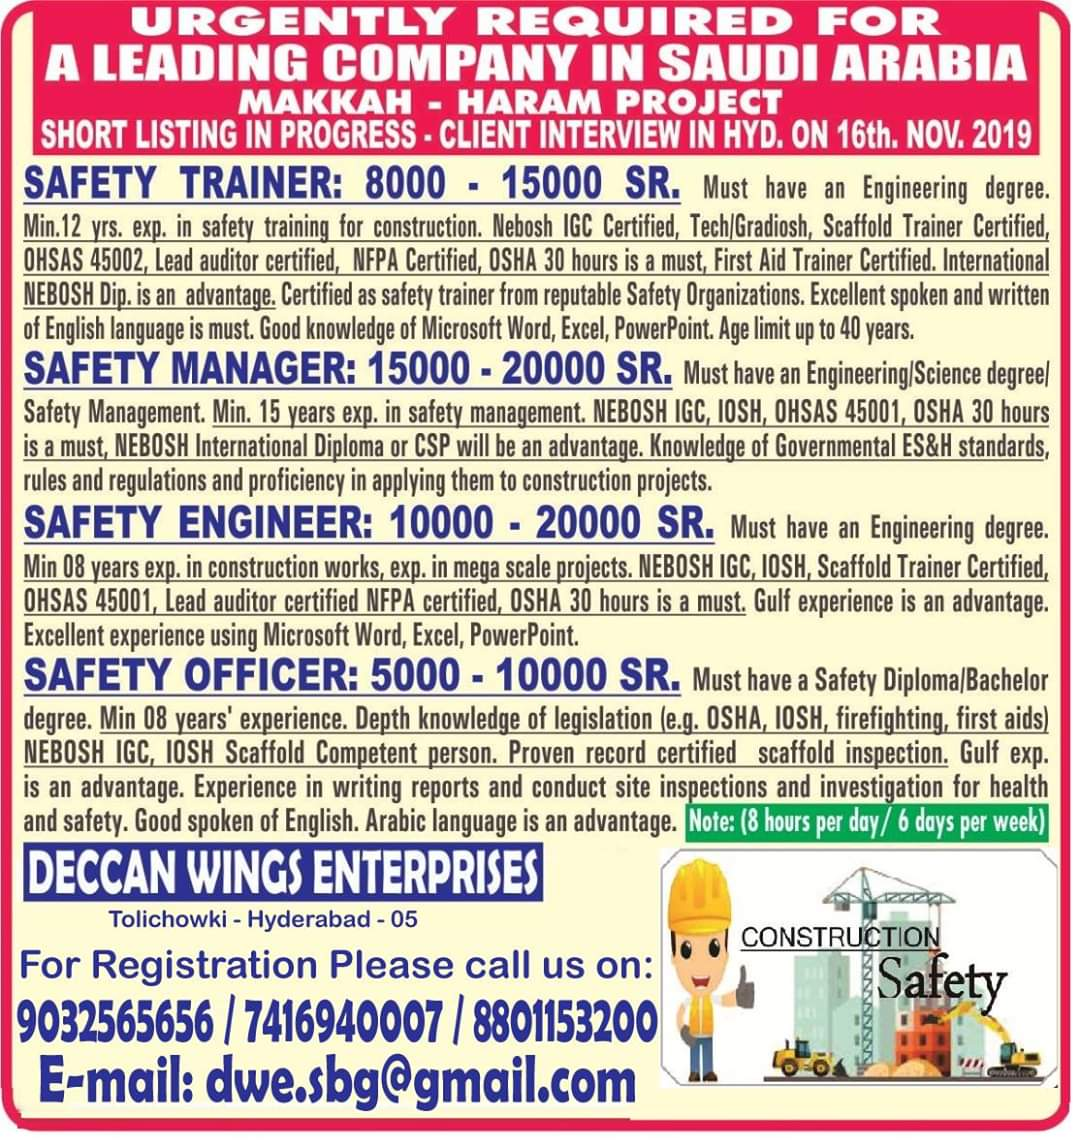 JOB OPPORTUNITIES IN A LEADING COMPANY IN SAUDI ARABIA